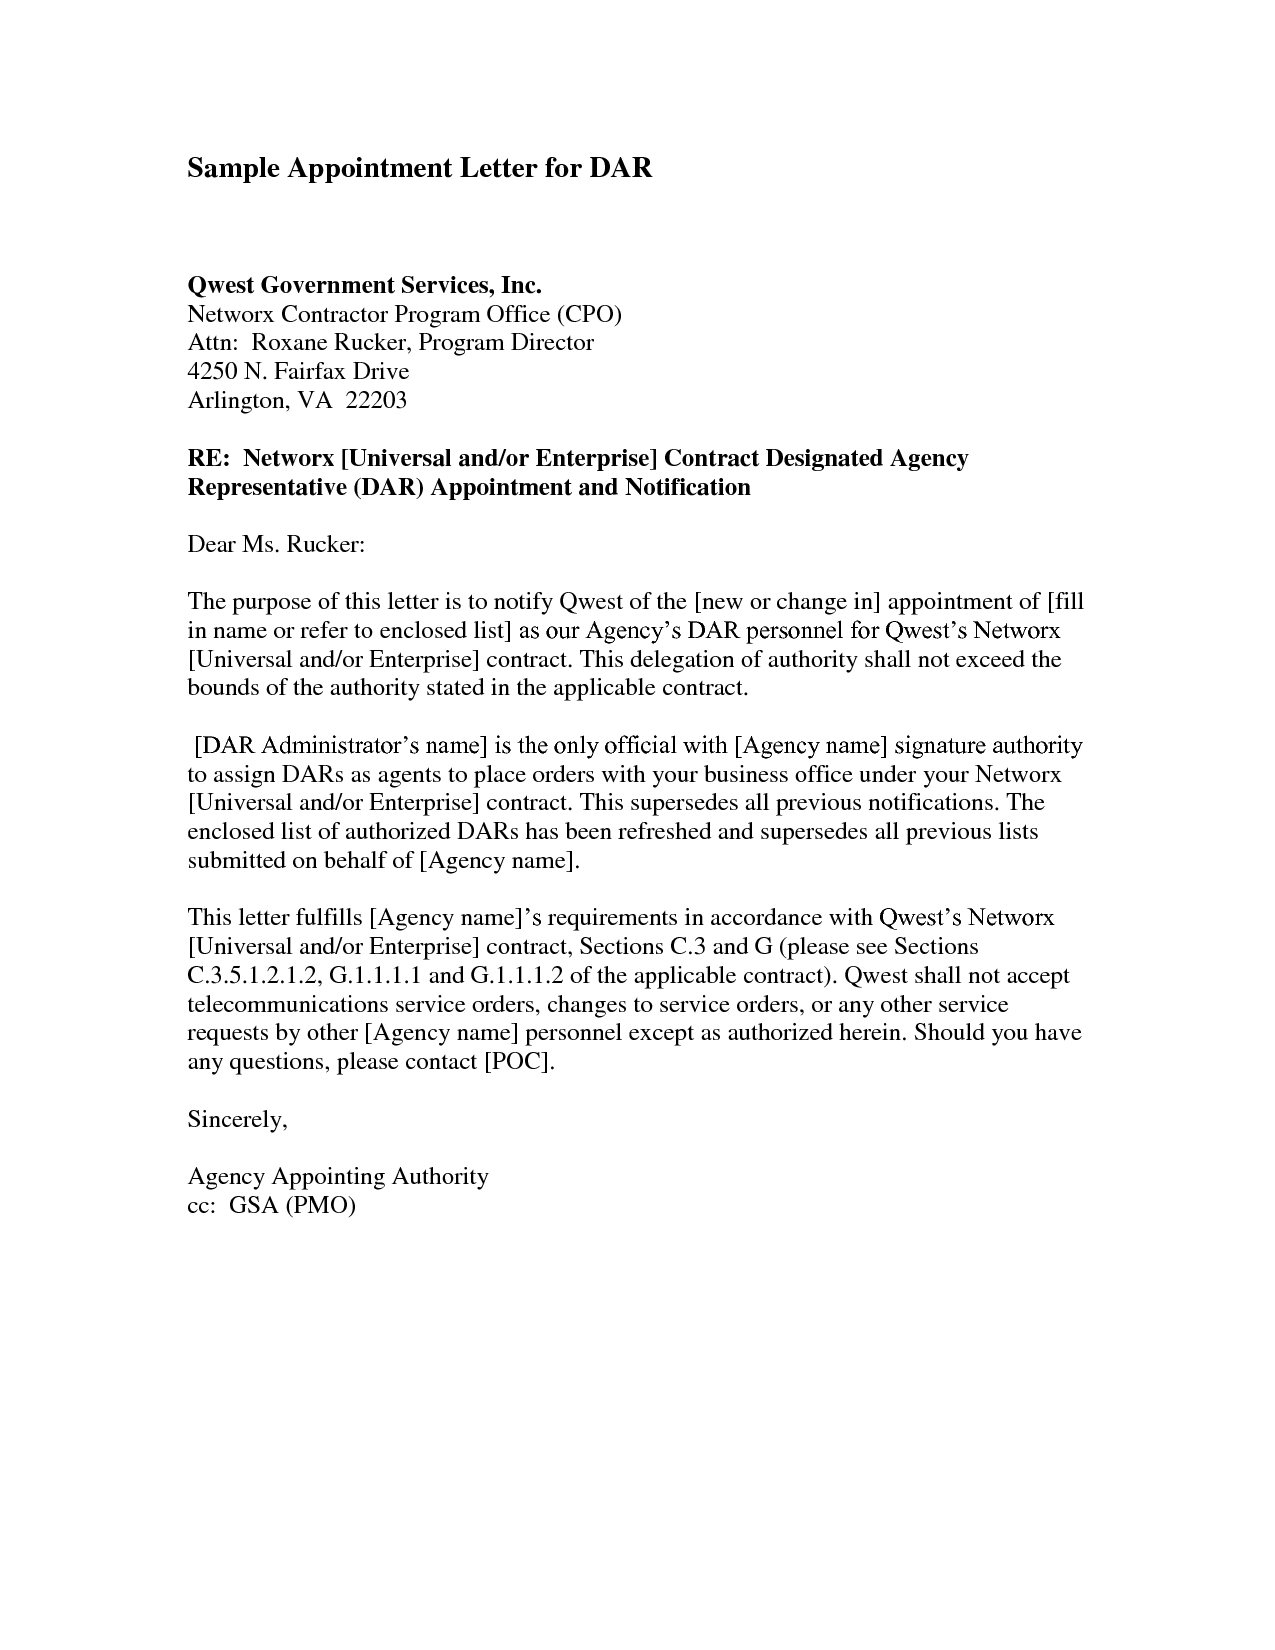 Charge Off Dispute Letter Template - Trustee Appointment Letter Director Trustee is Appointed or